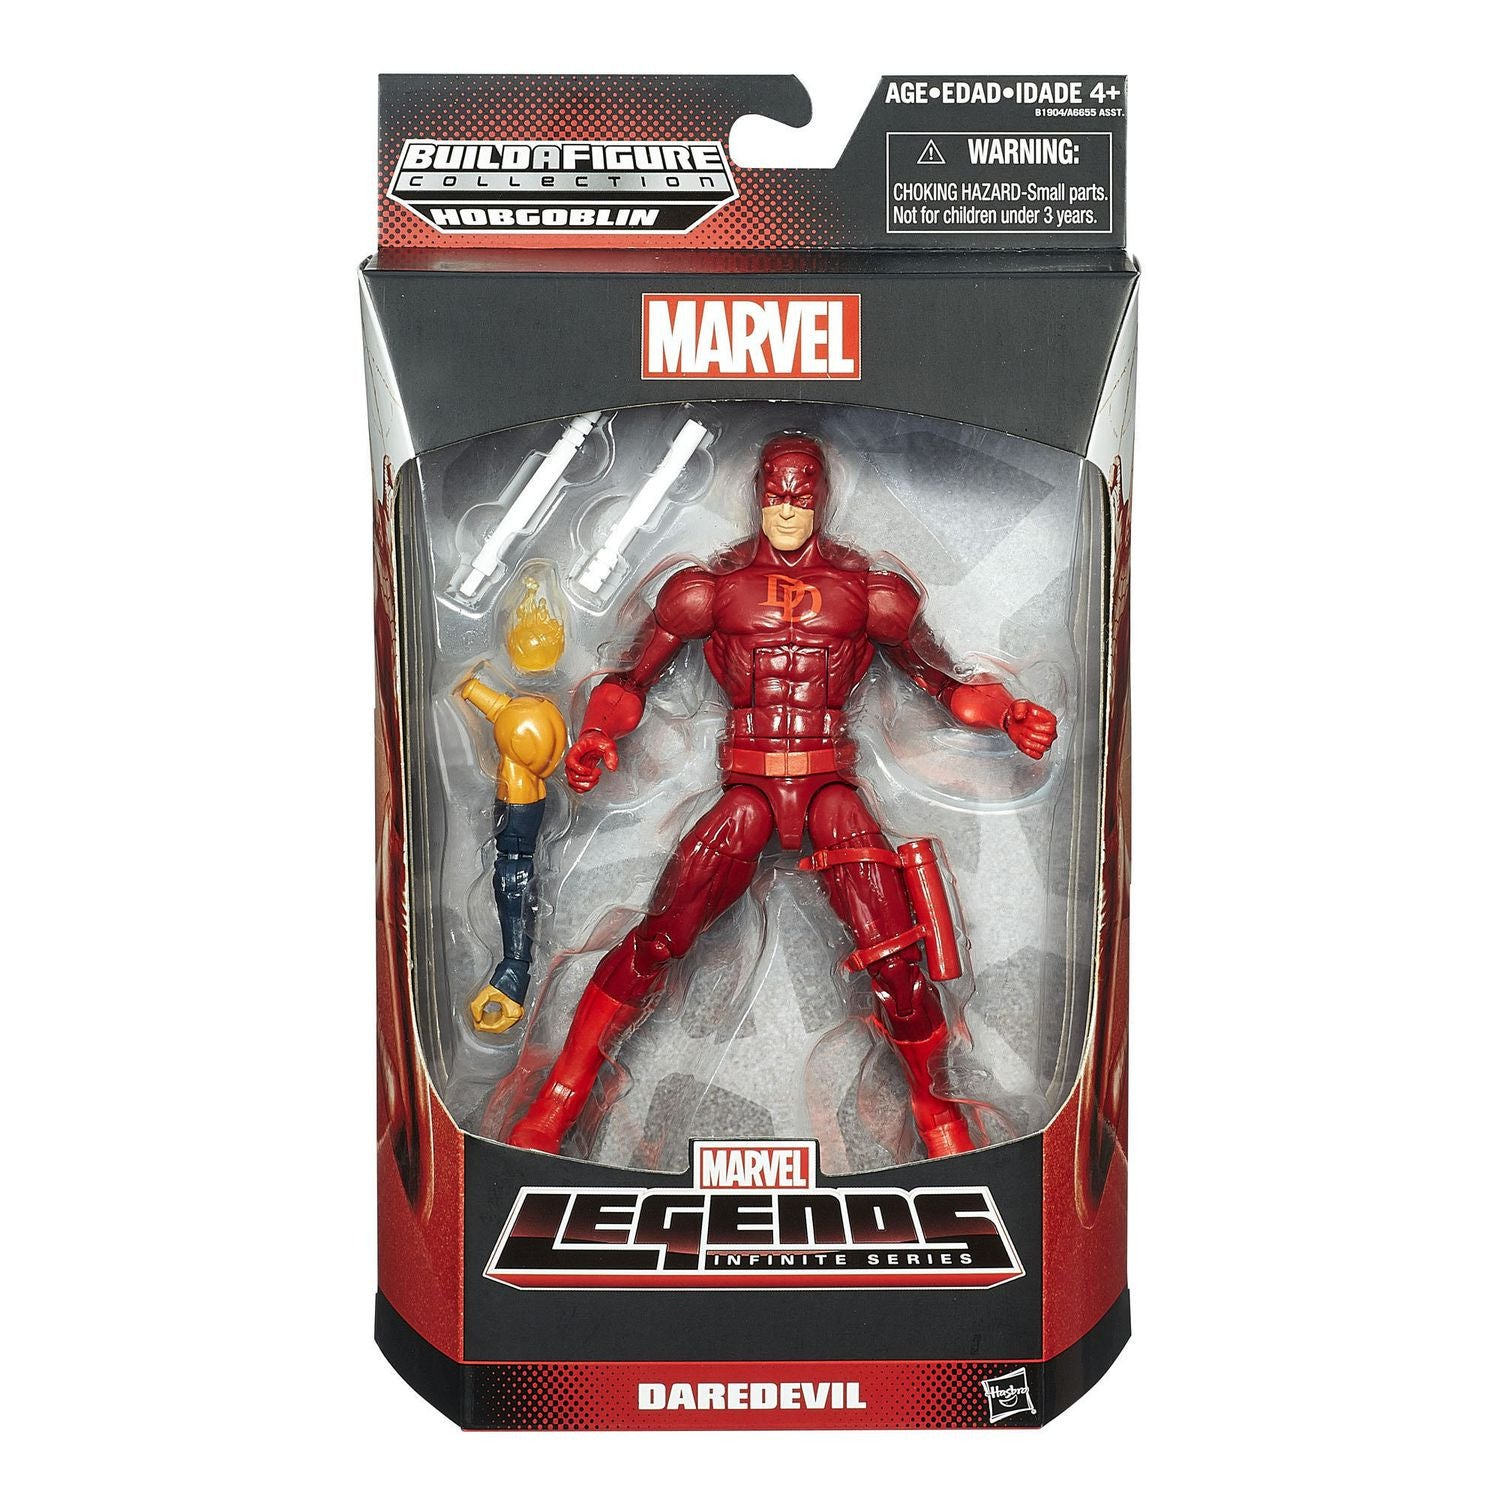 Marvel Legends Infinite - Hobgoblin BAF - DareDevil